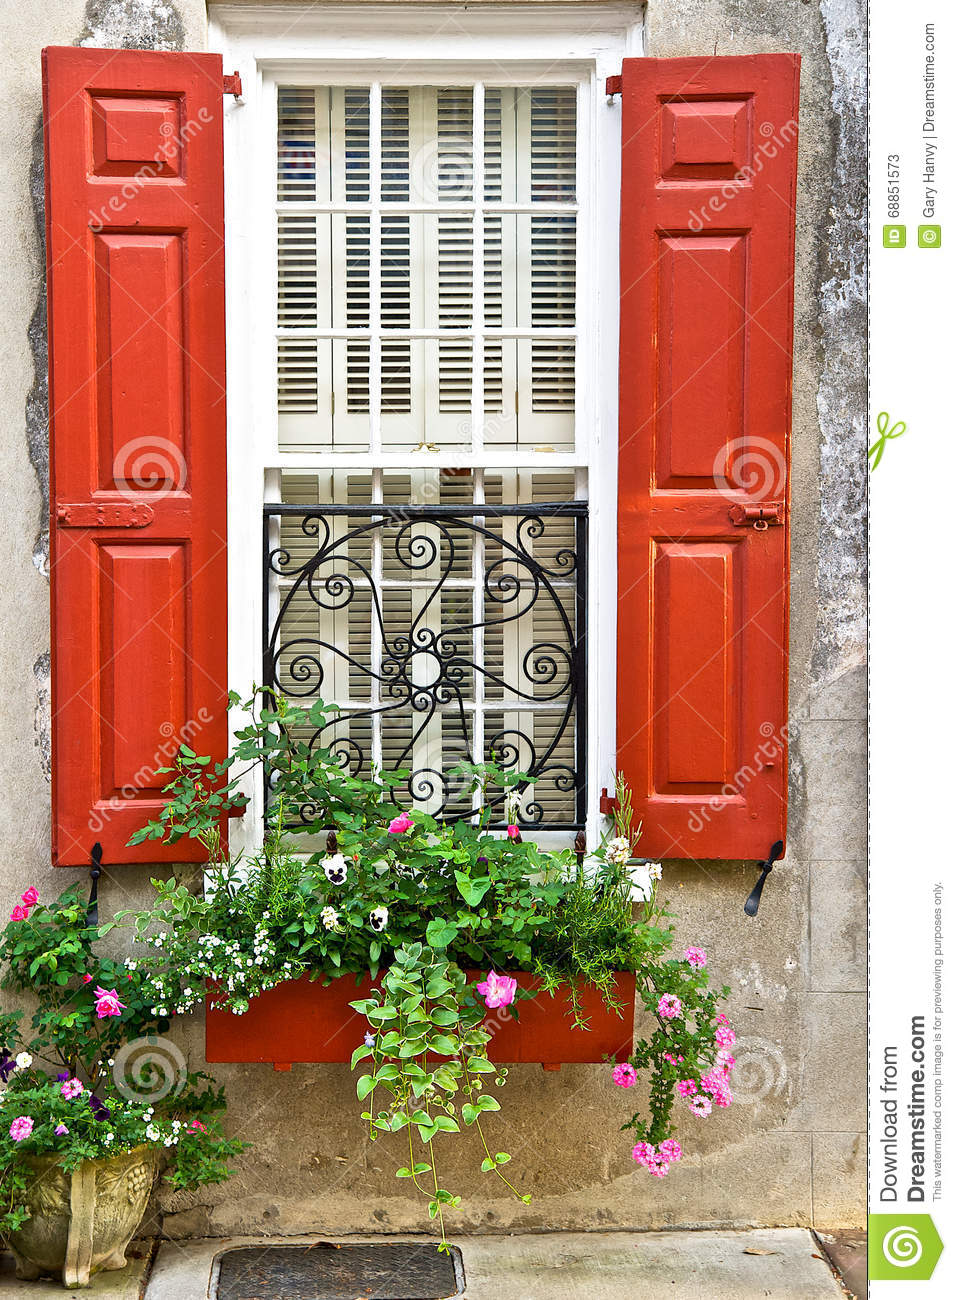 Red Window Shutters With Flower Box And Planter Stock ...